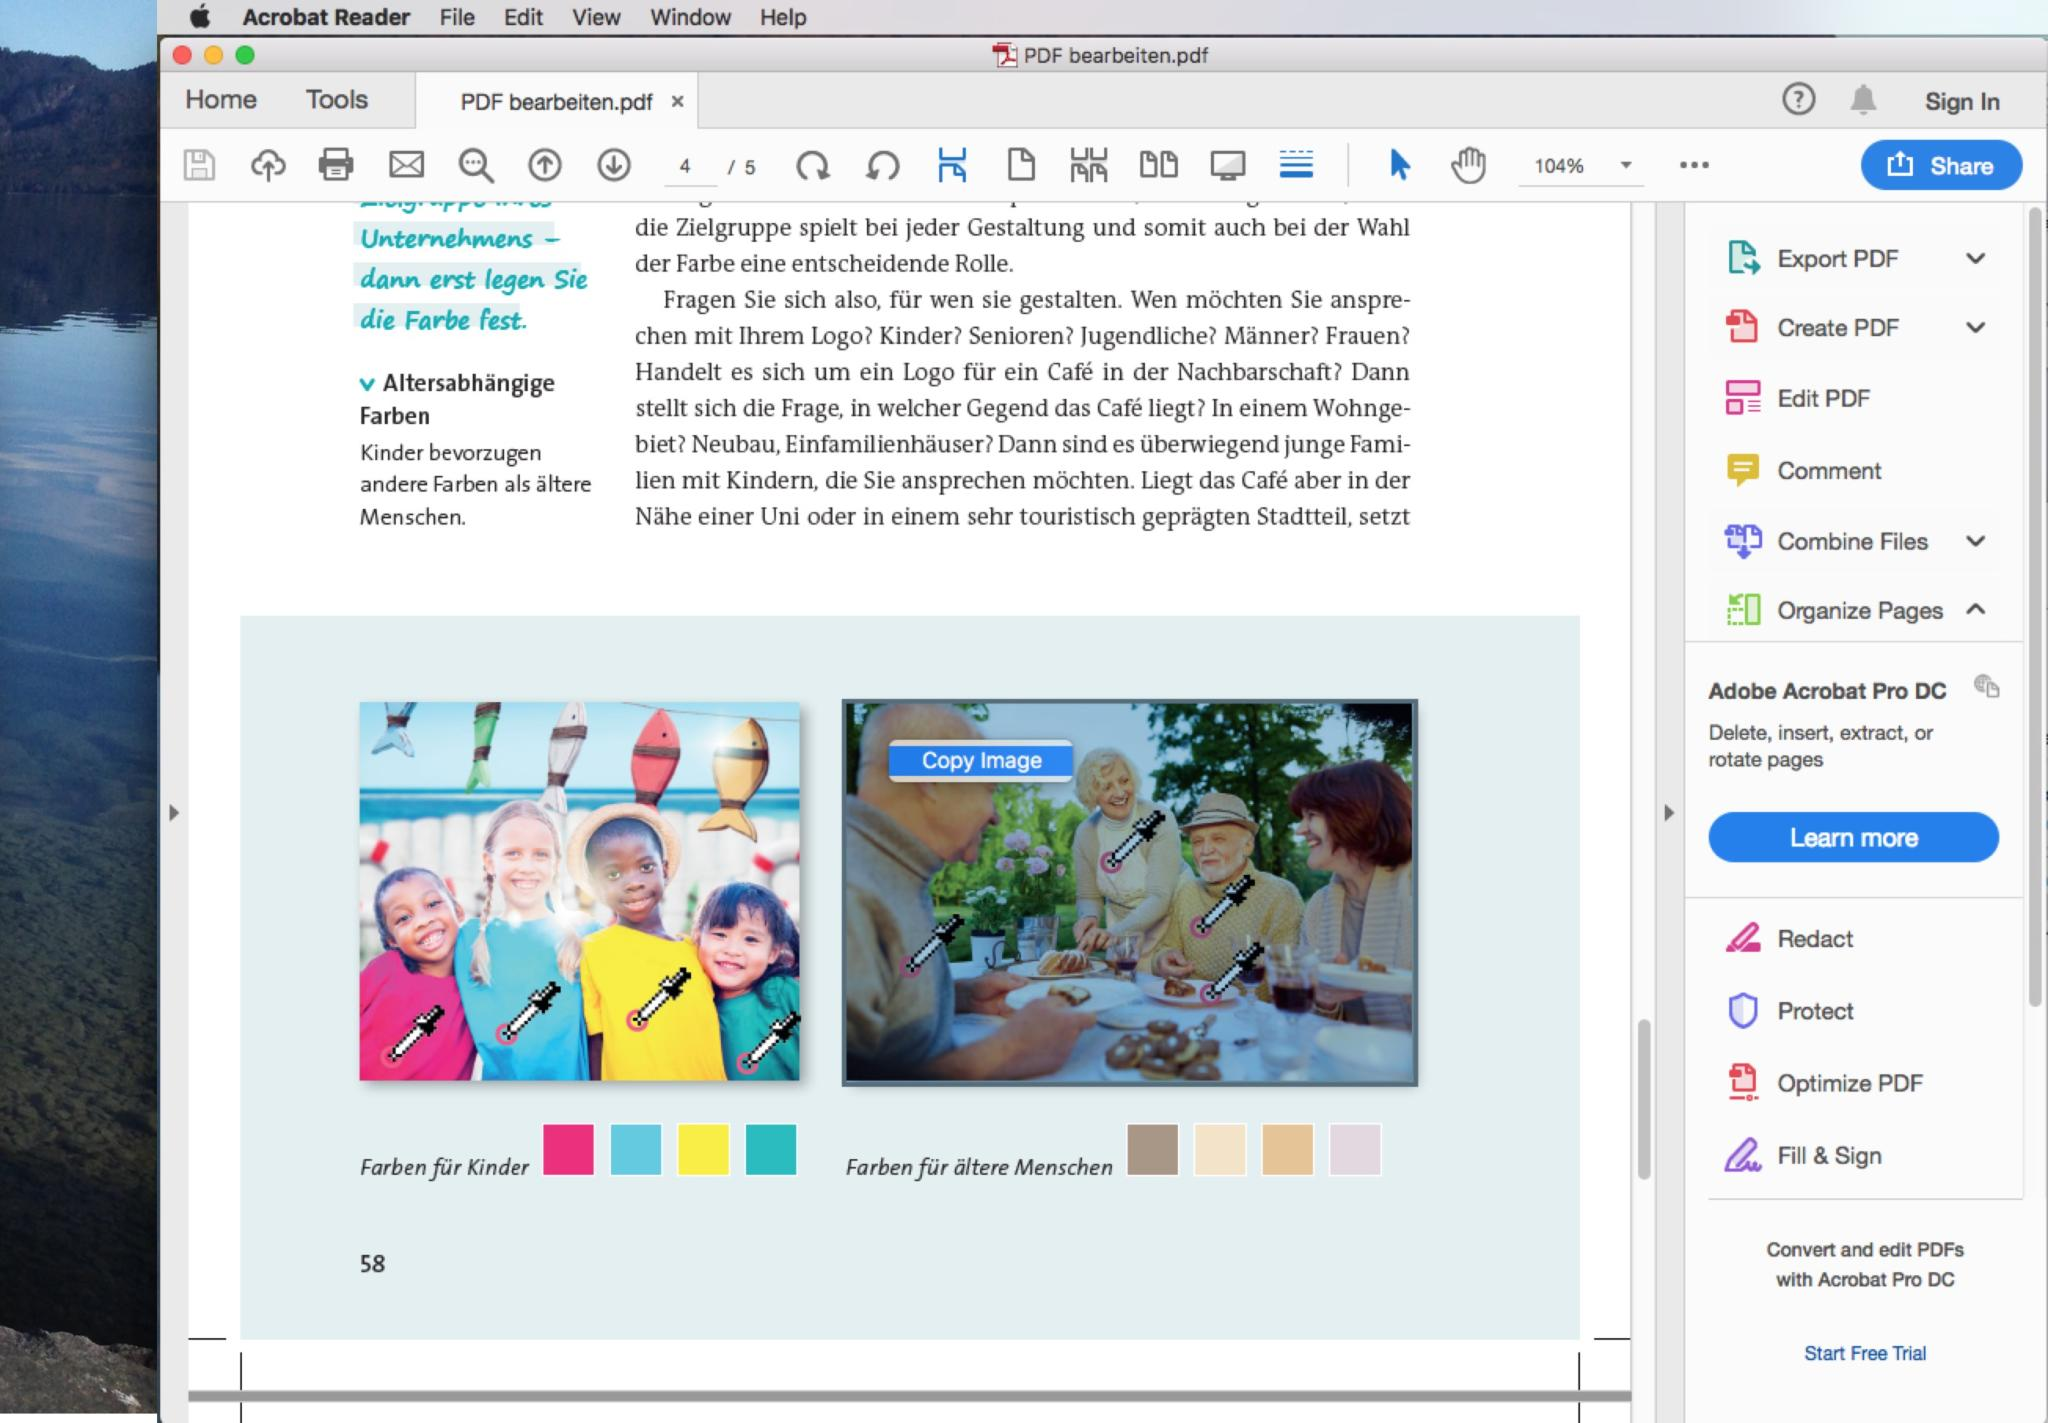 How to edit a PDF with desktop applications or online tools